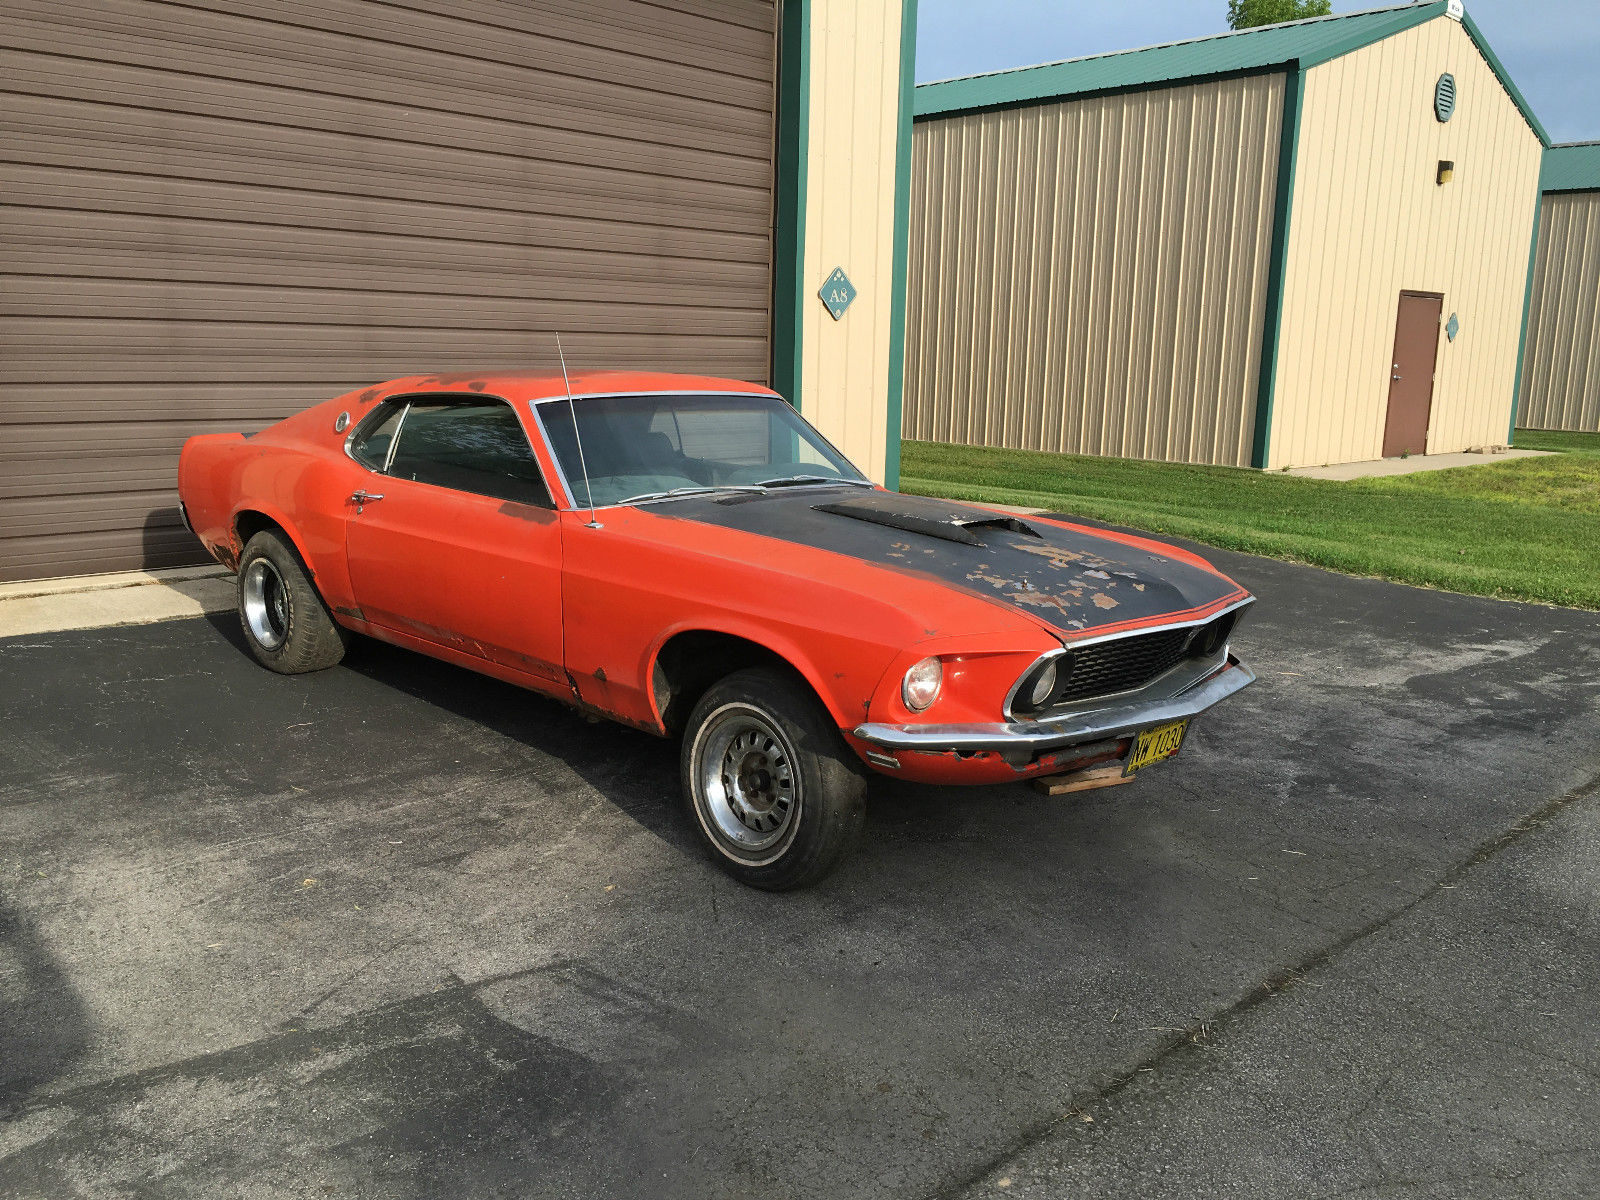 67 mustang project used cars